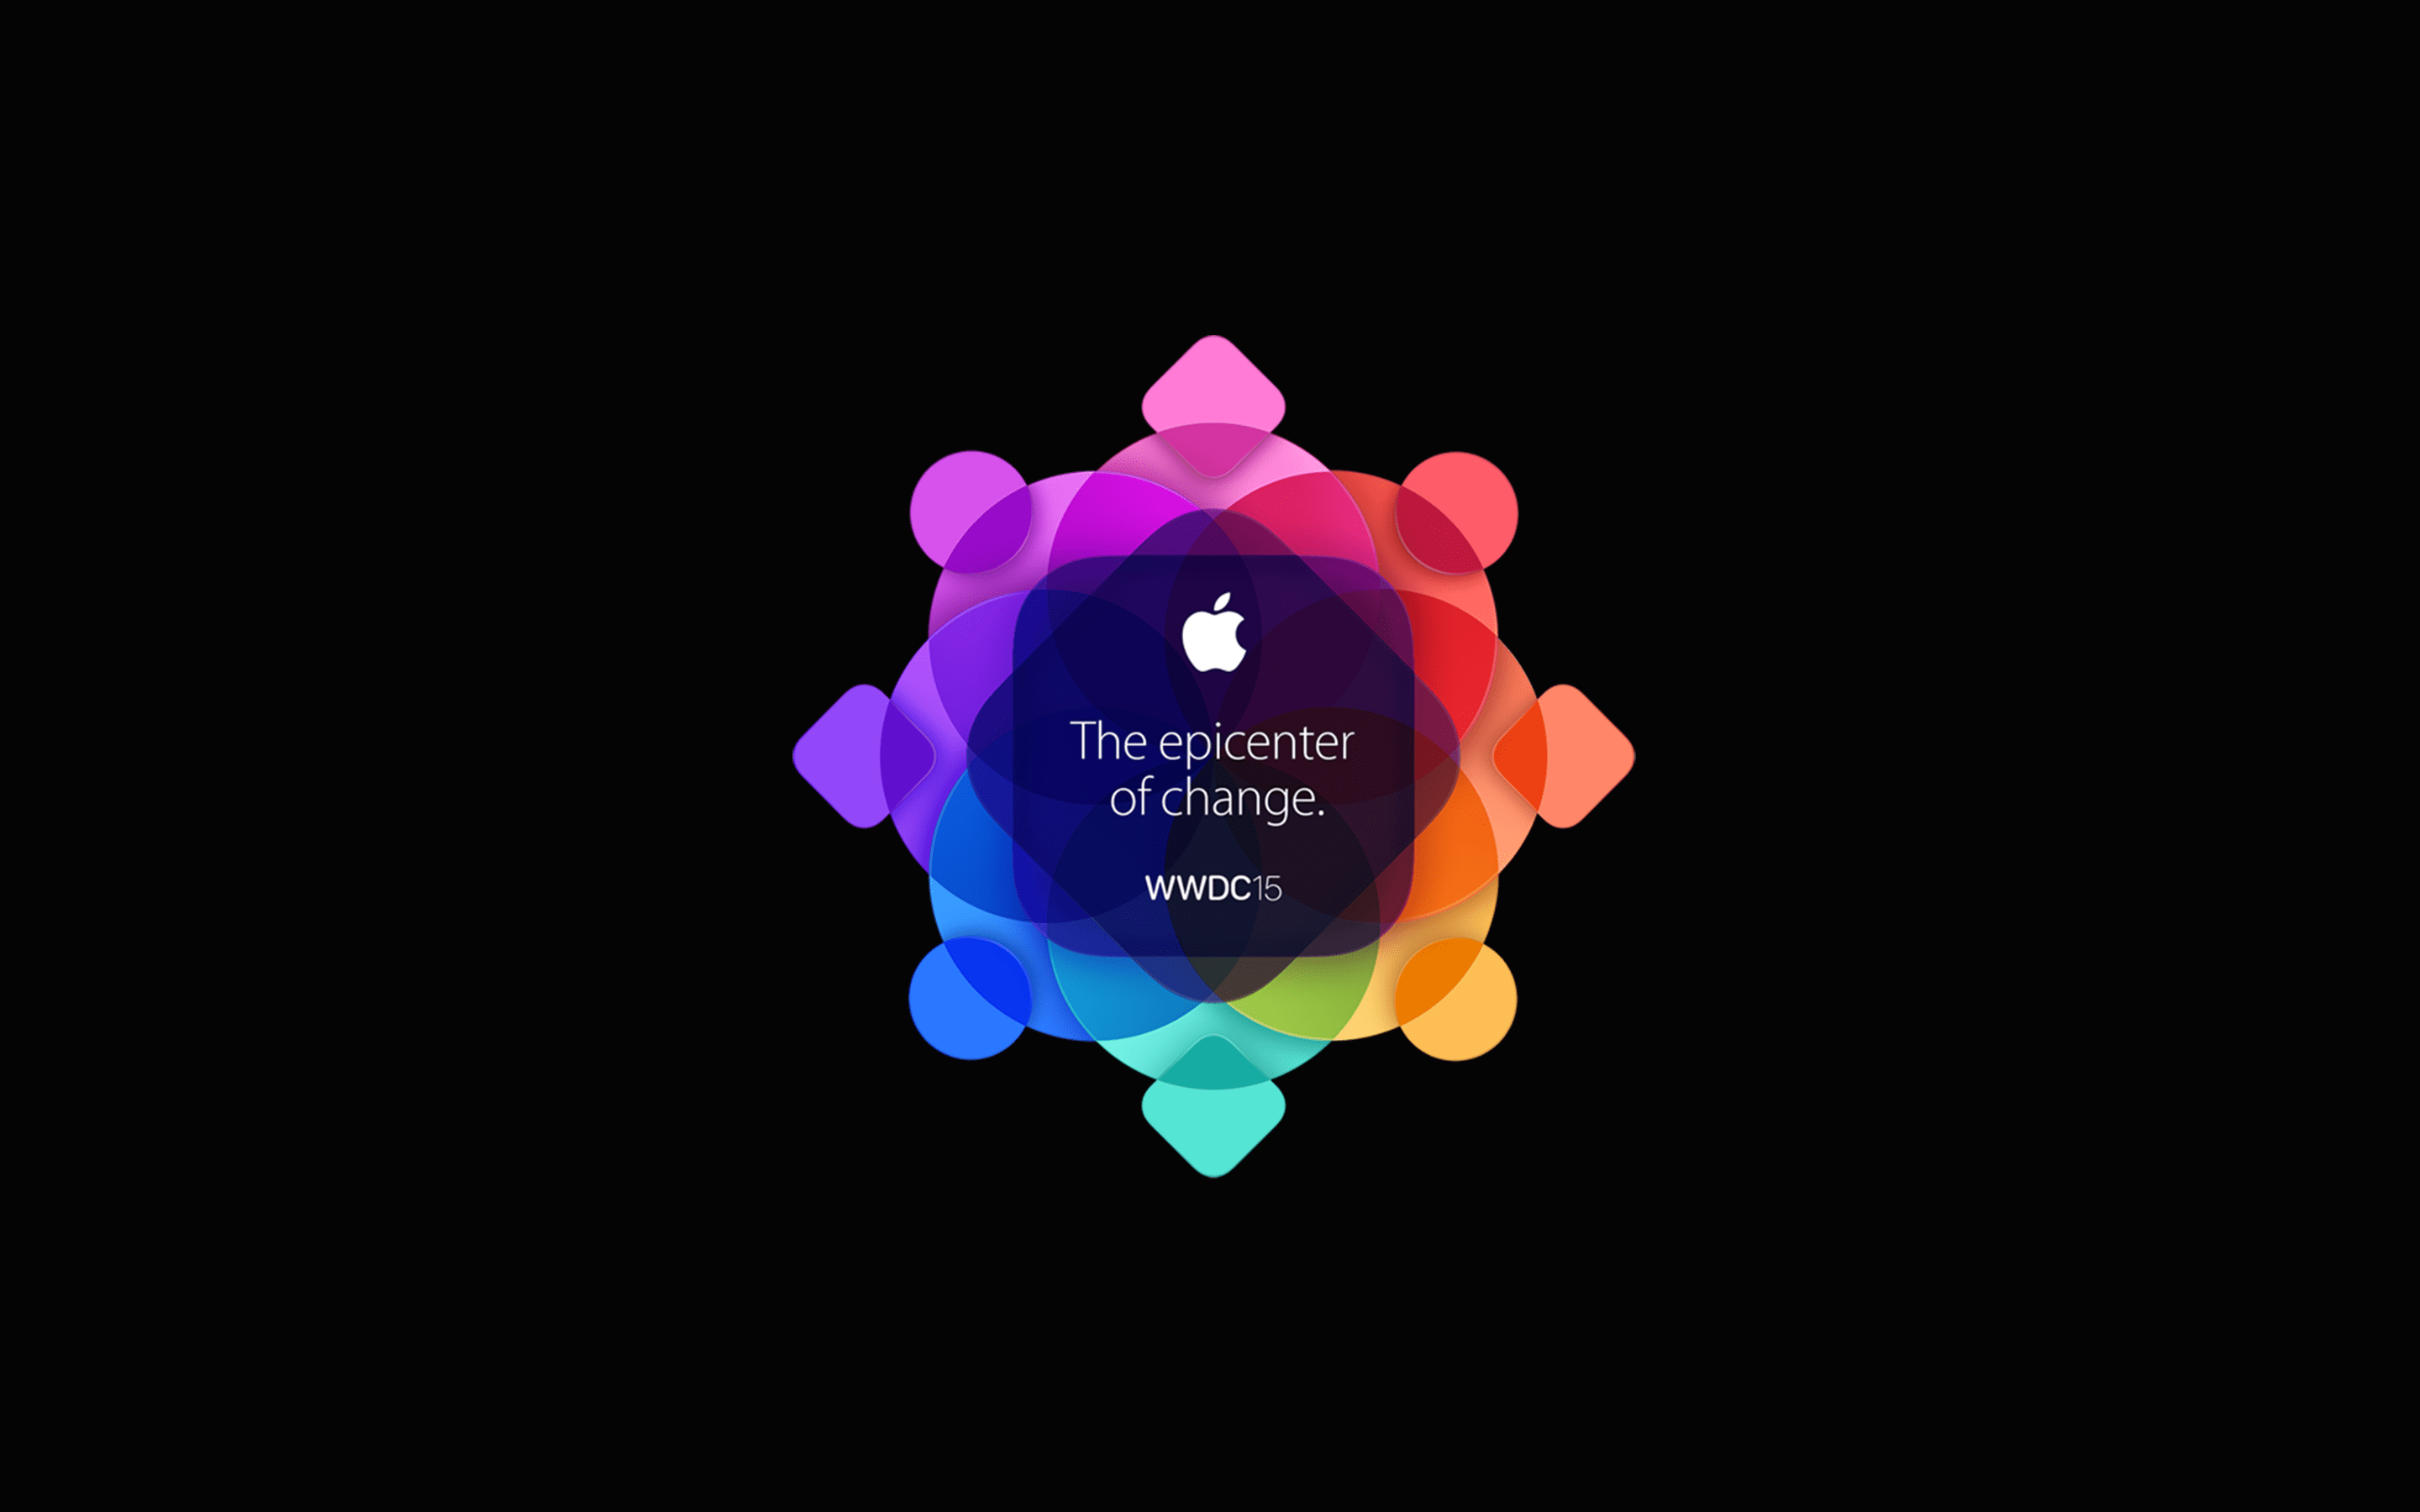 Inside Iphone X Wallpaper Wwdc 2015 Wallpapers The Epicenter Of Change